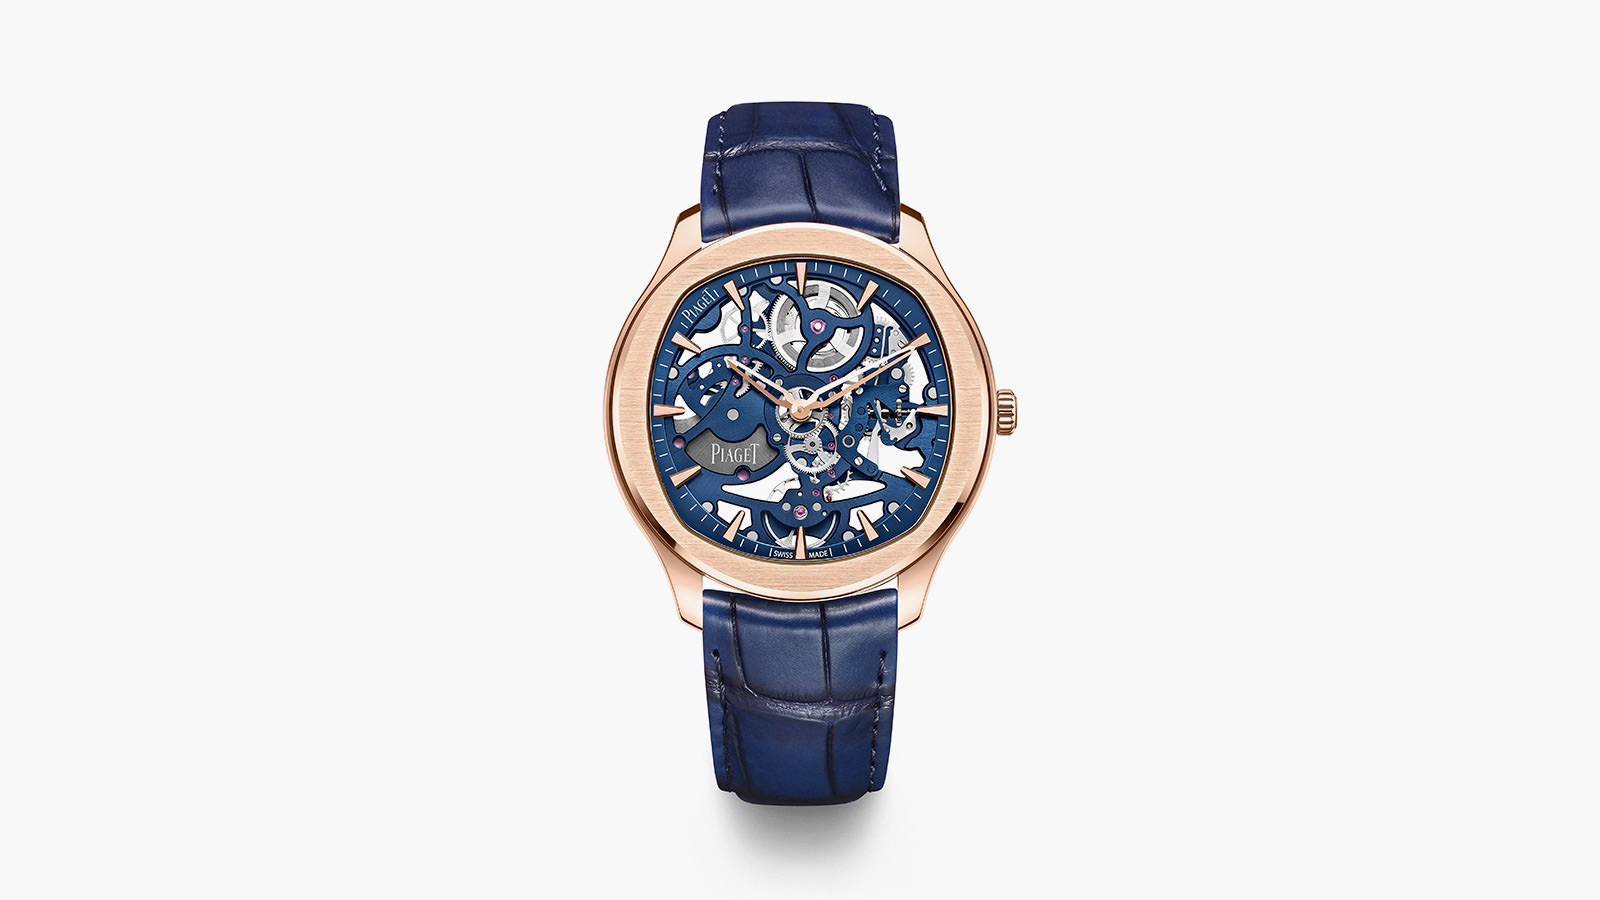 2021 Piaget Collection